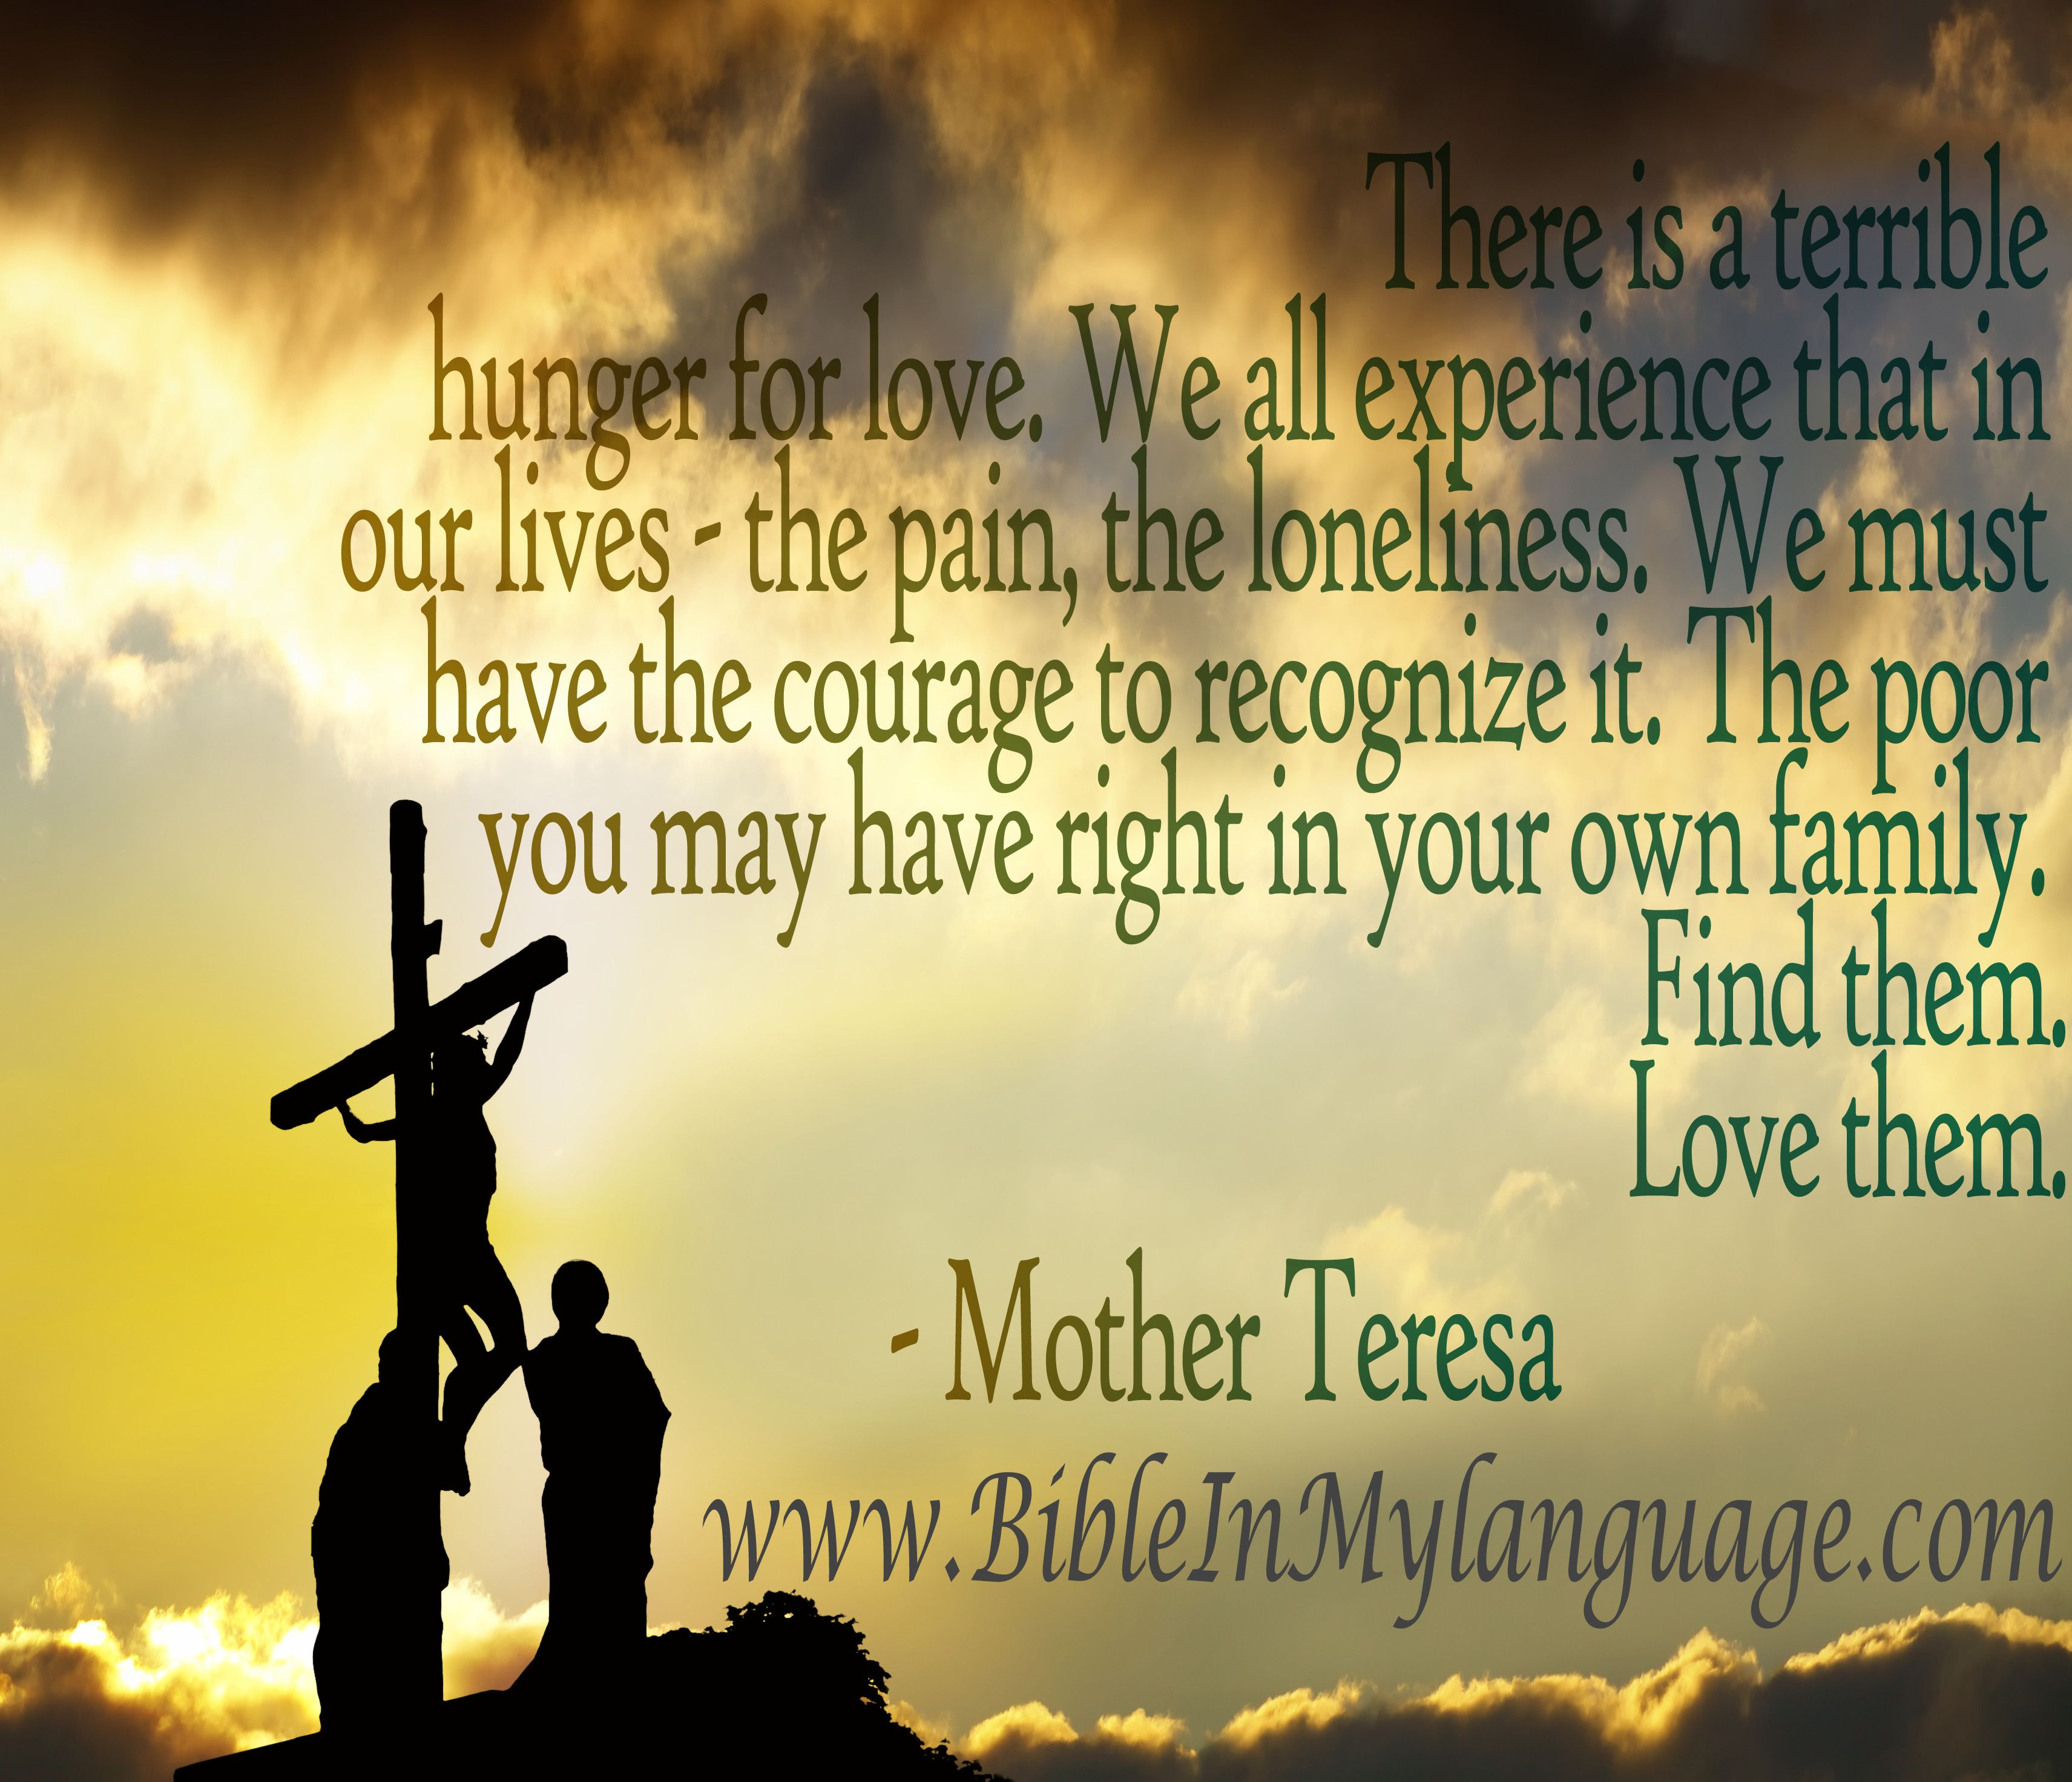 There is a terrible hunger for love We all experience that in our lives · Mother Theresa QuotesMother